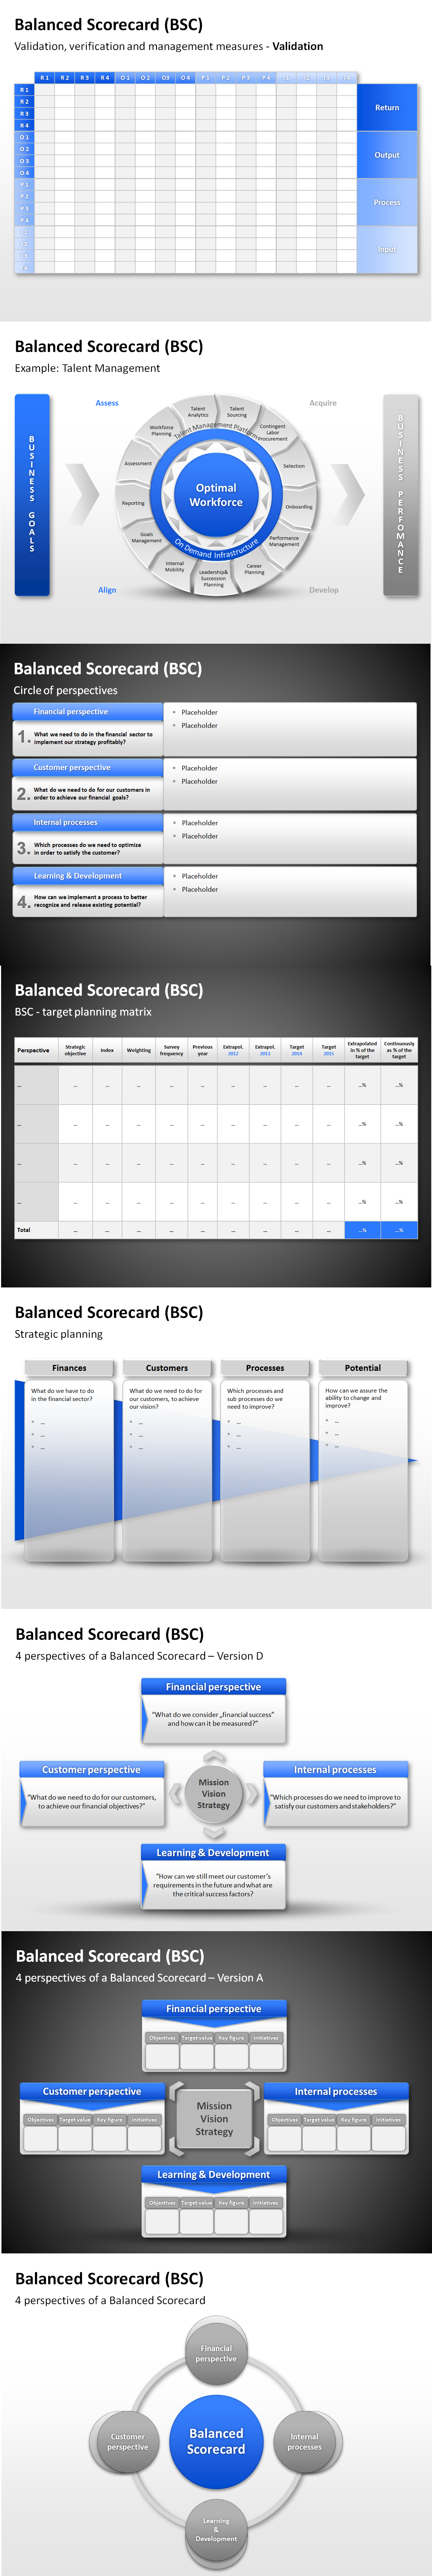 Andara Balanced Scorecard  Business Dashboards For Smbs